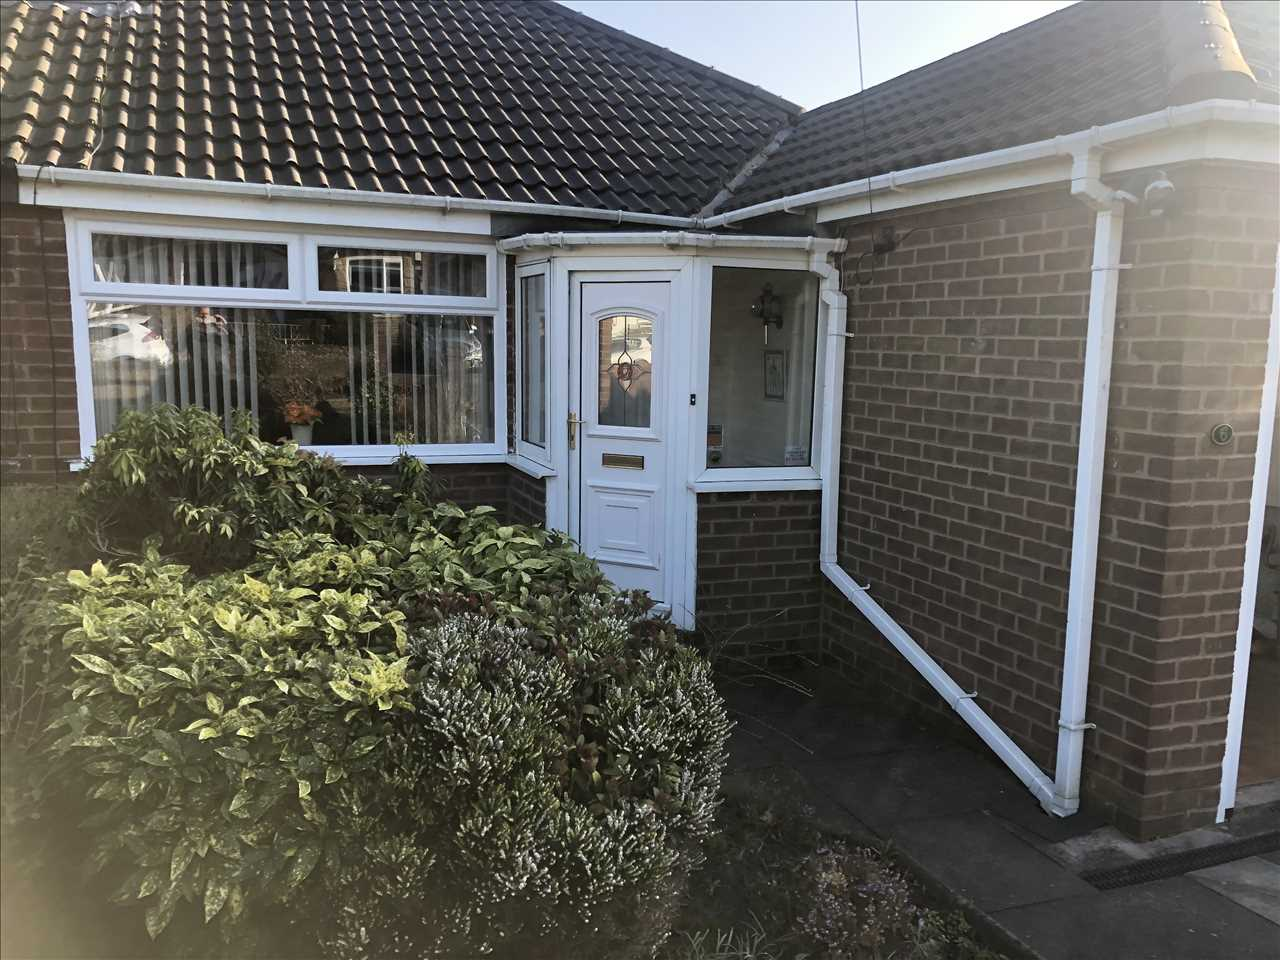 3 bed bungalow for sale in Belmont Road, Adlington - Property Image 1